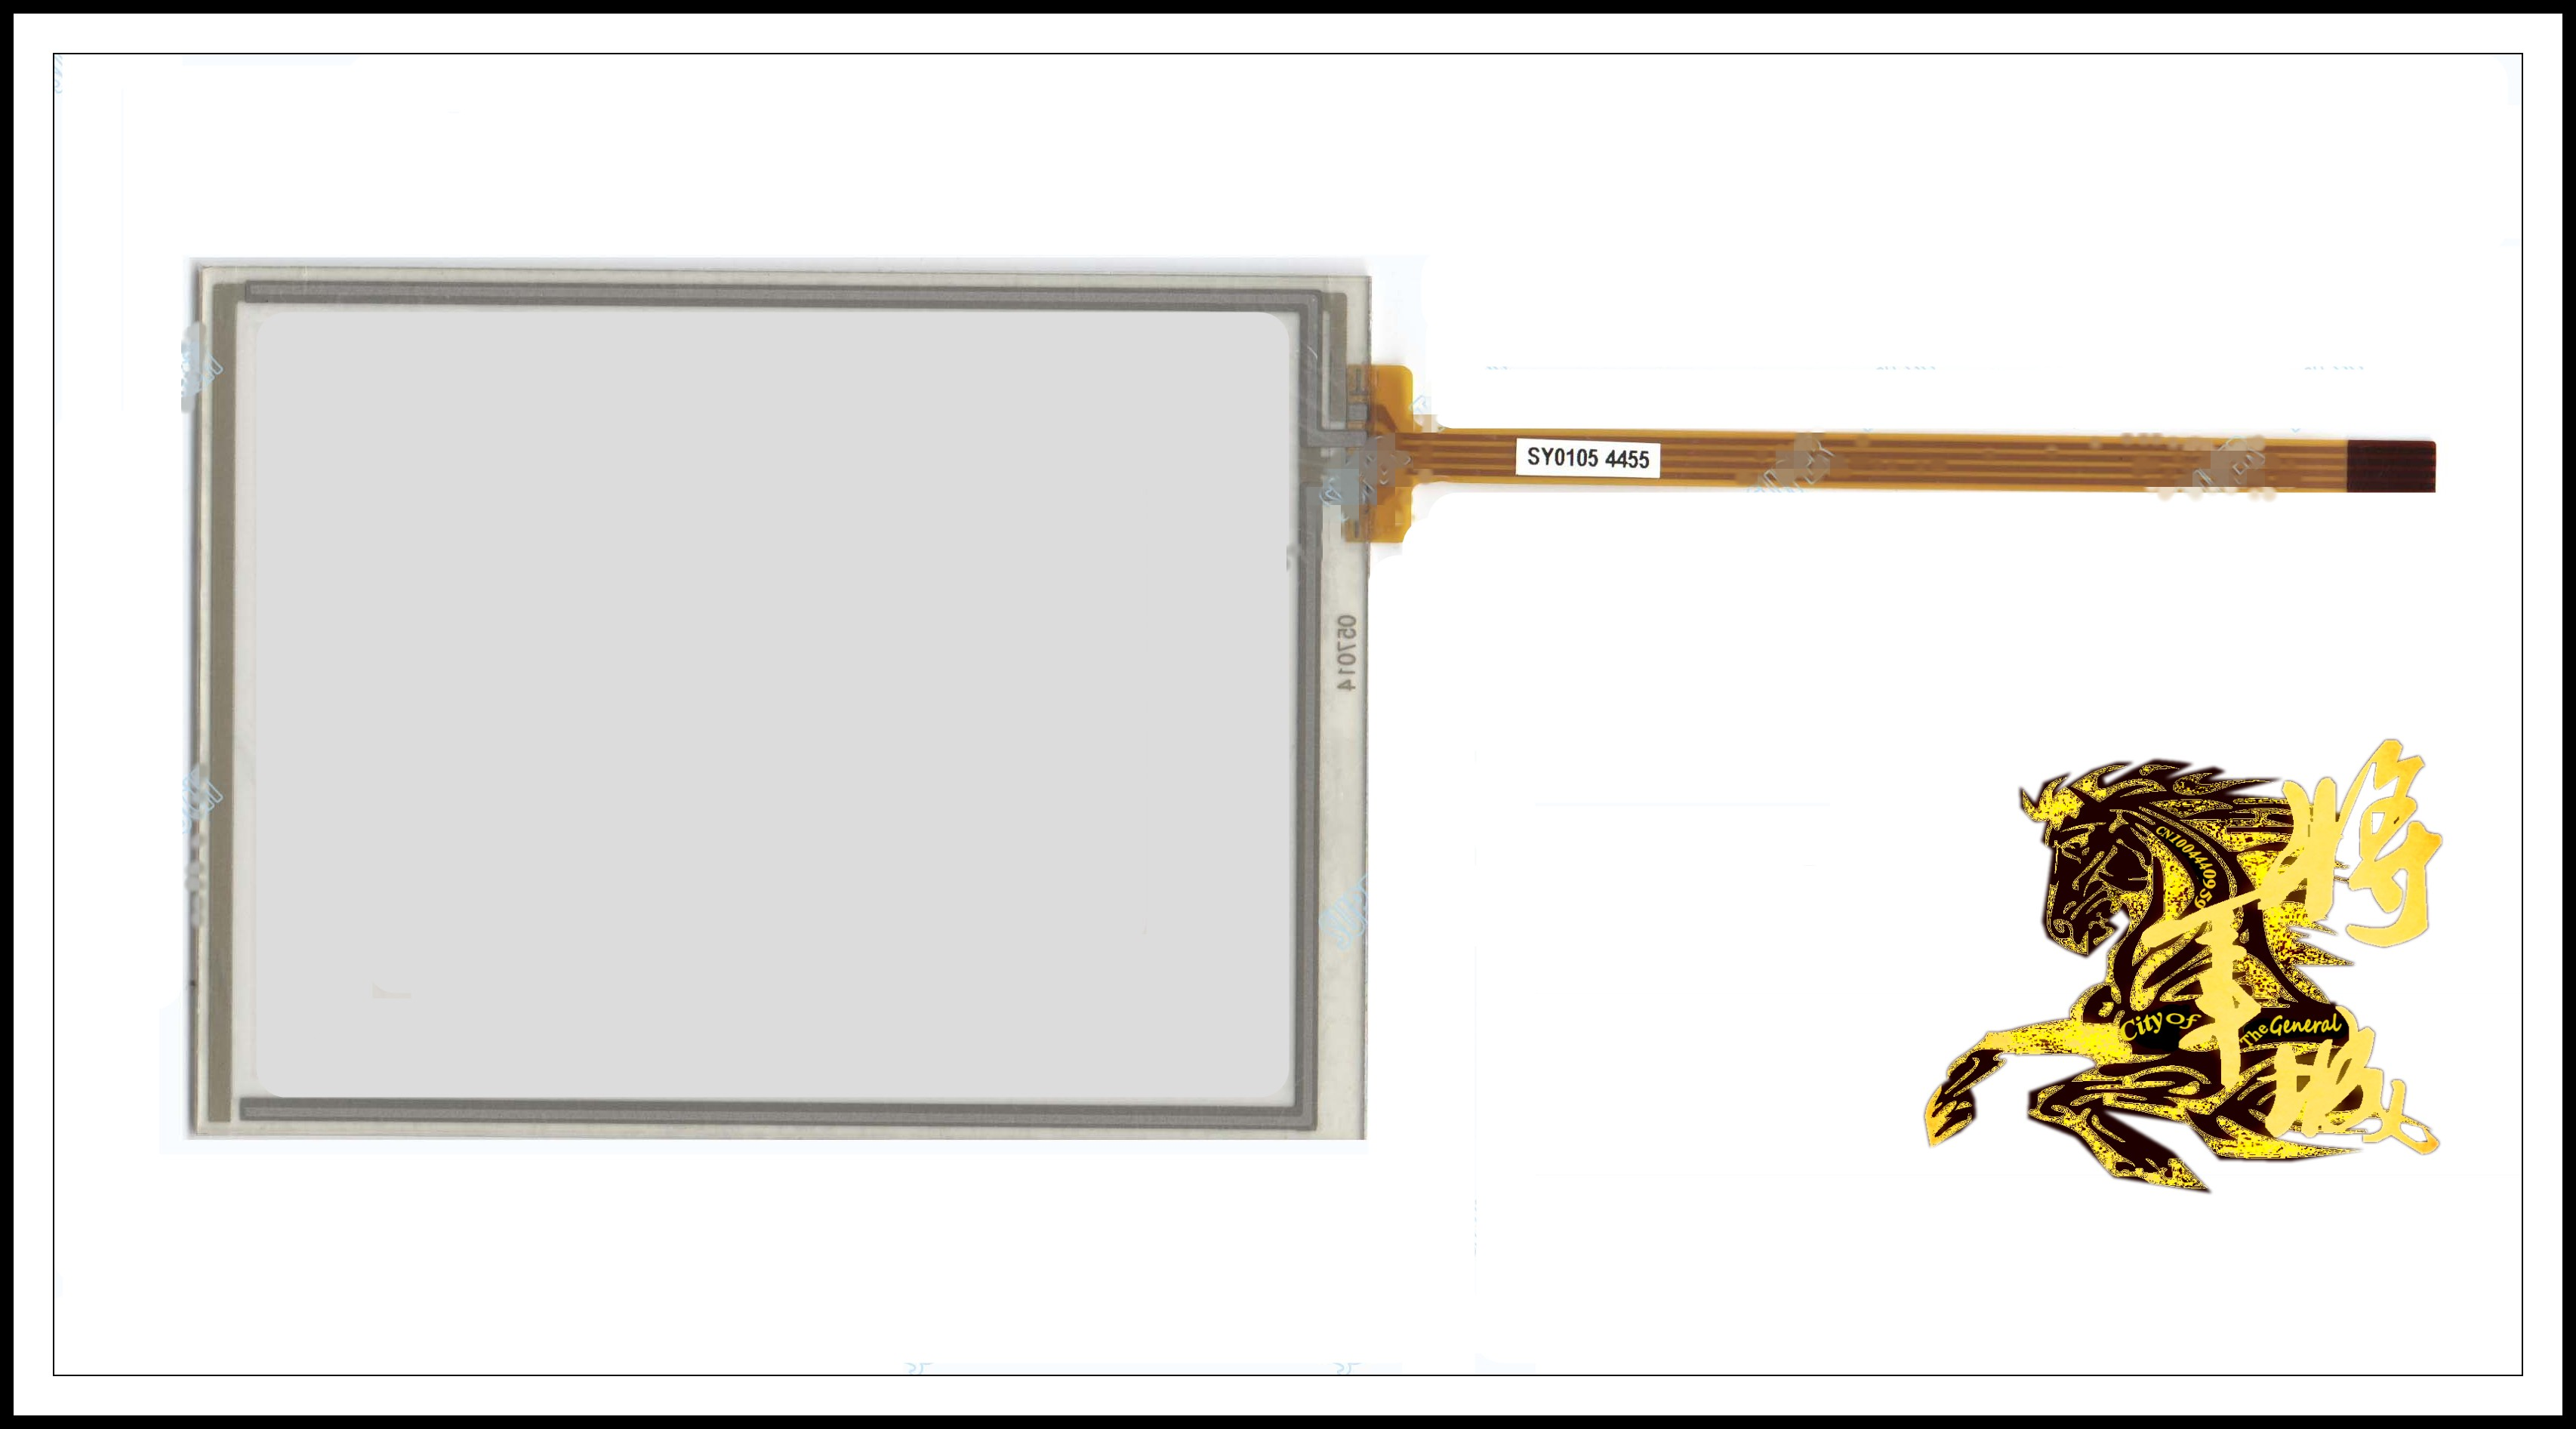 GENCTY For 5.7 inch 131 * 97 resistive touch screen W-X